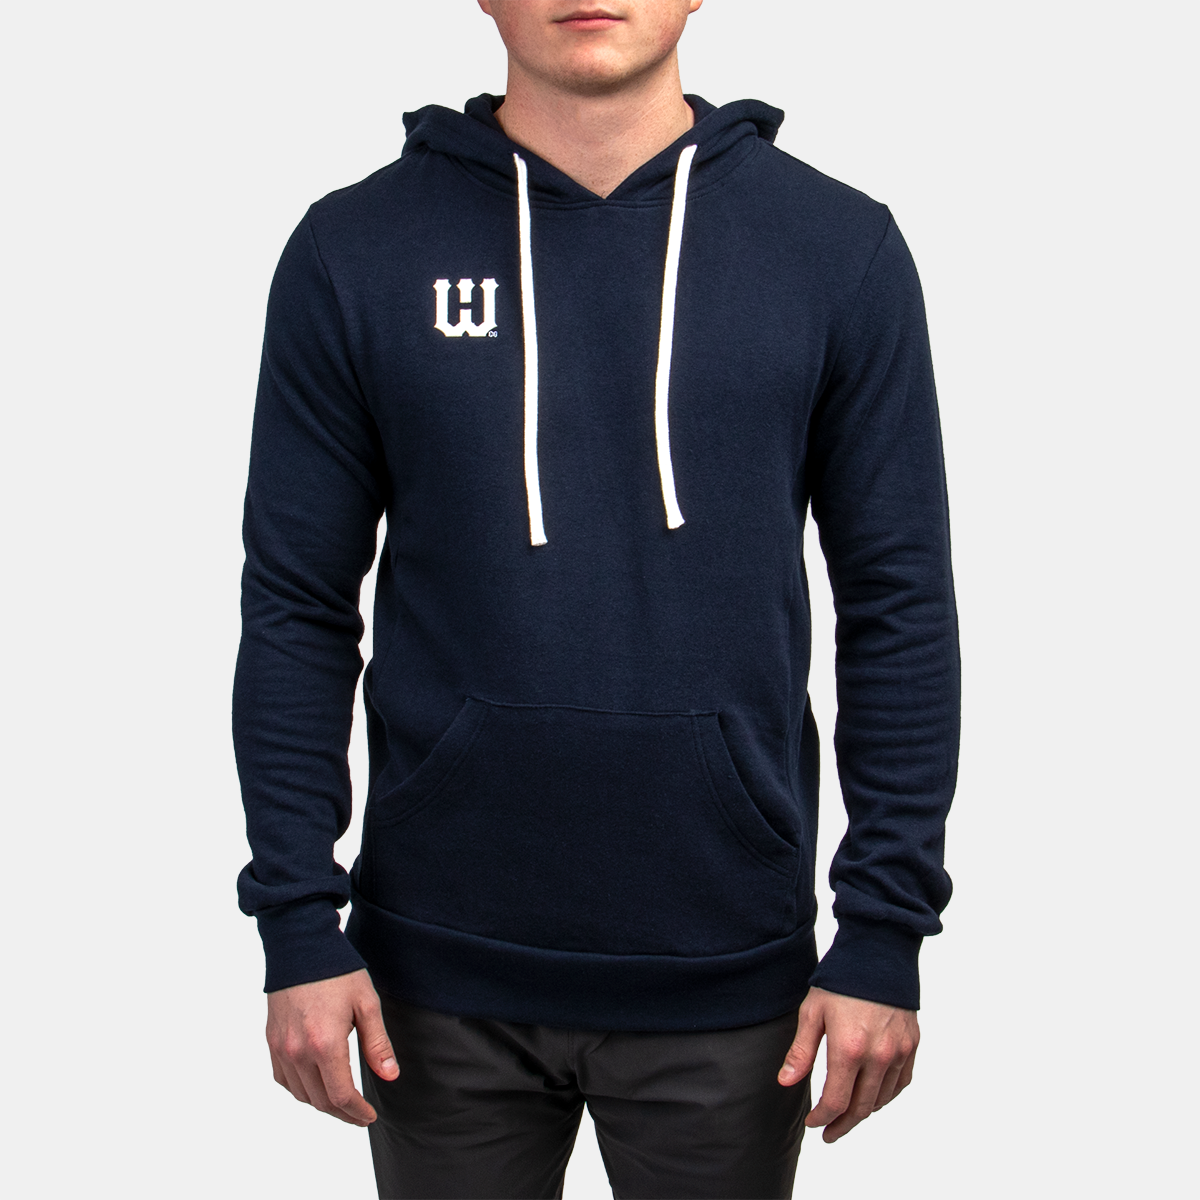 The Captain Players Collection Hoodie - Limited Edition